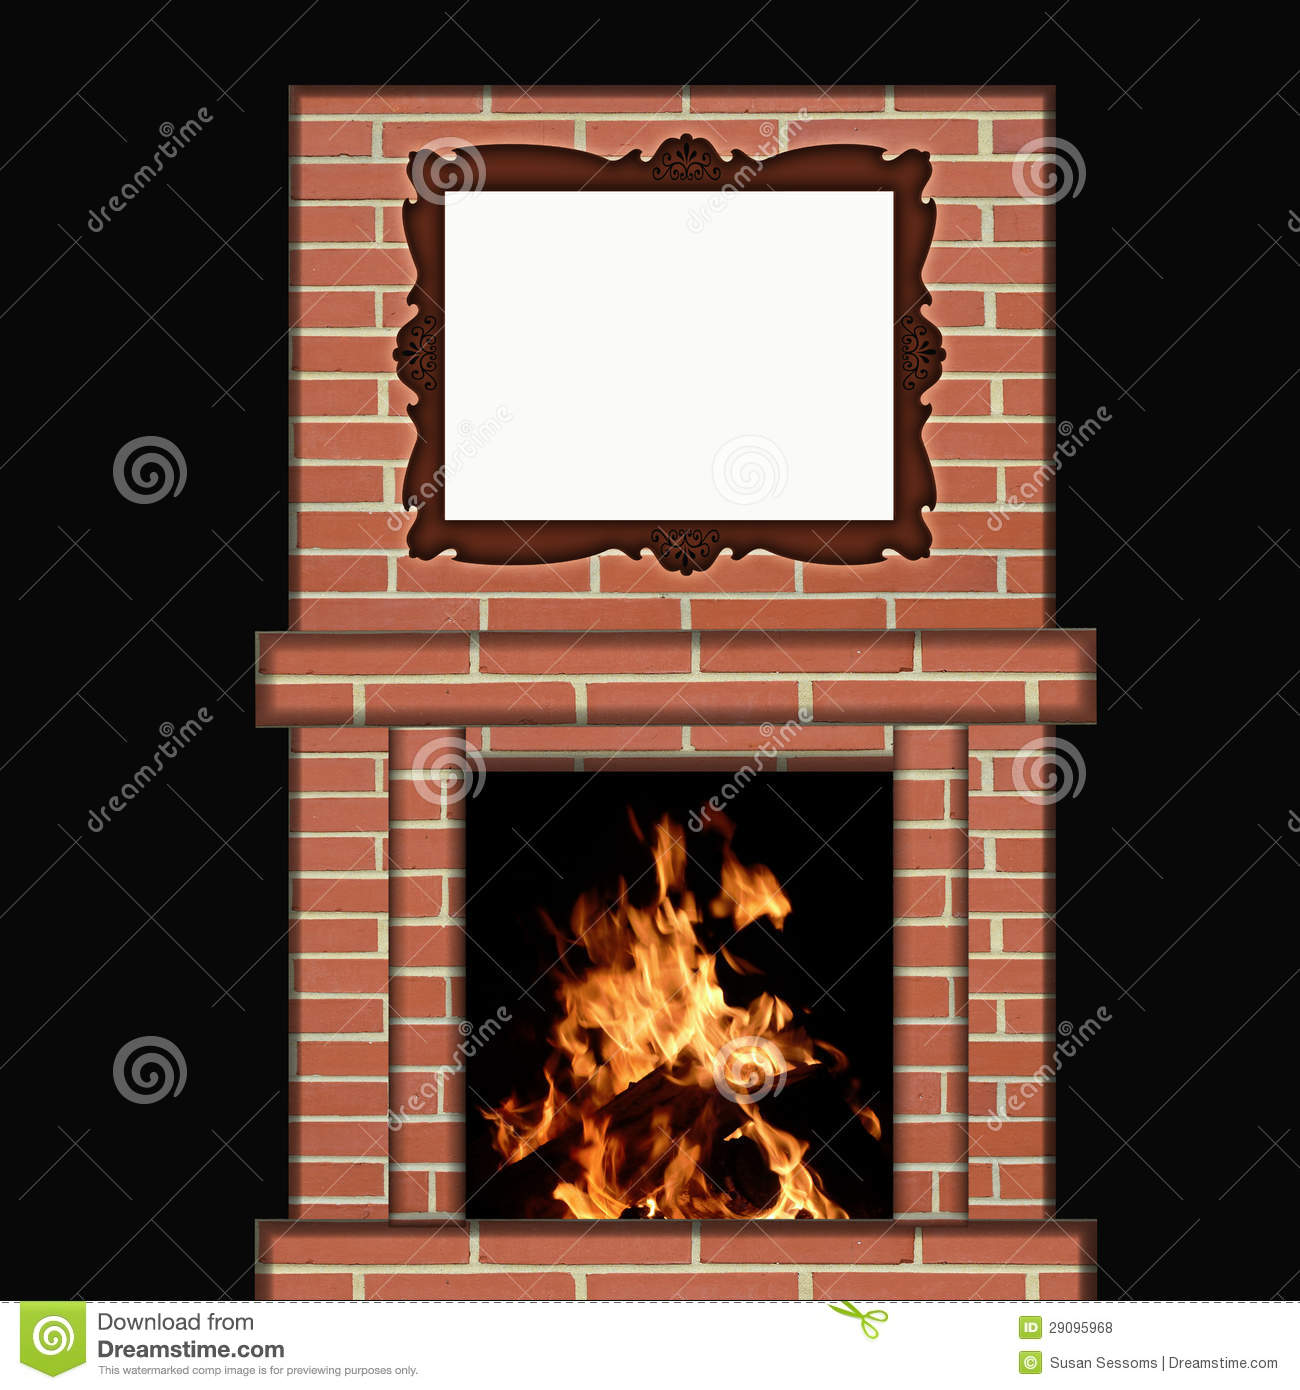 feuer das im kamin mit bilderrahmen brennt stockfoto illustration von bequem kamin 29095968. Black Bedroom Furniture Sets. Home Design Ideas